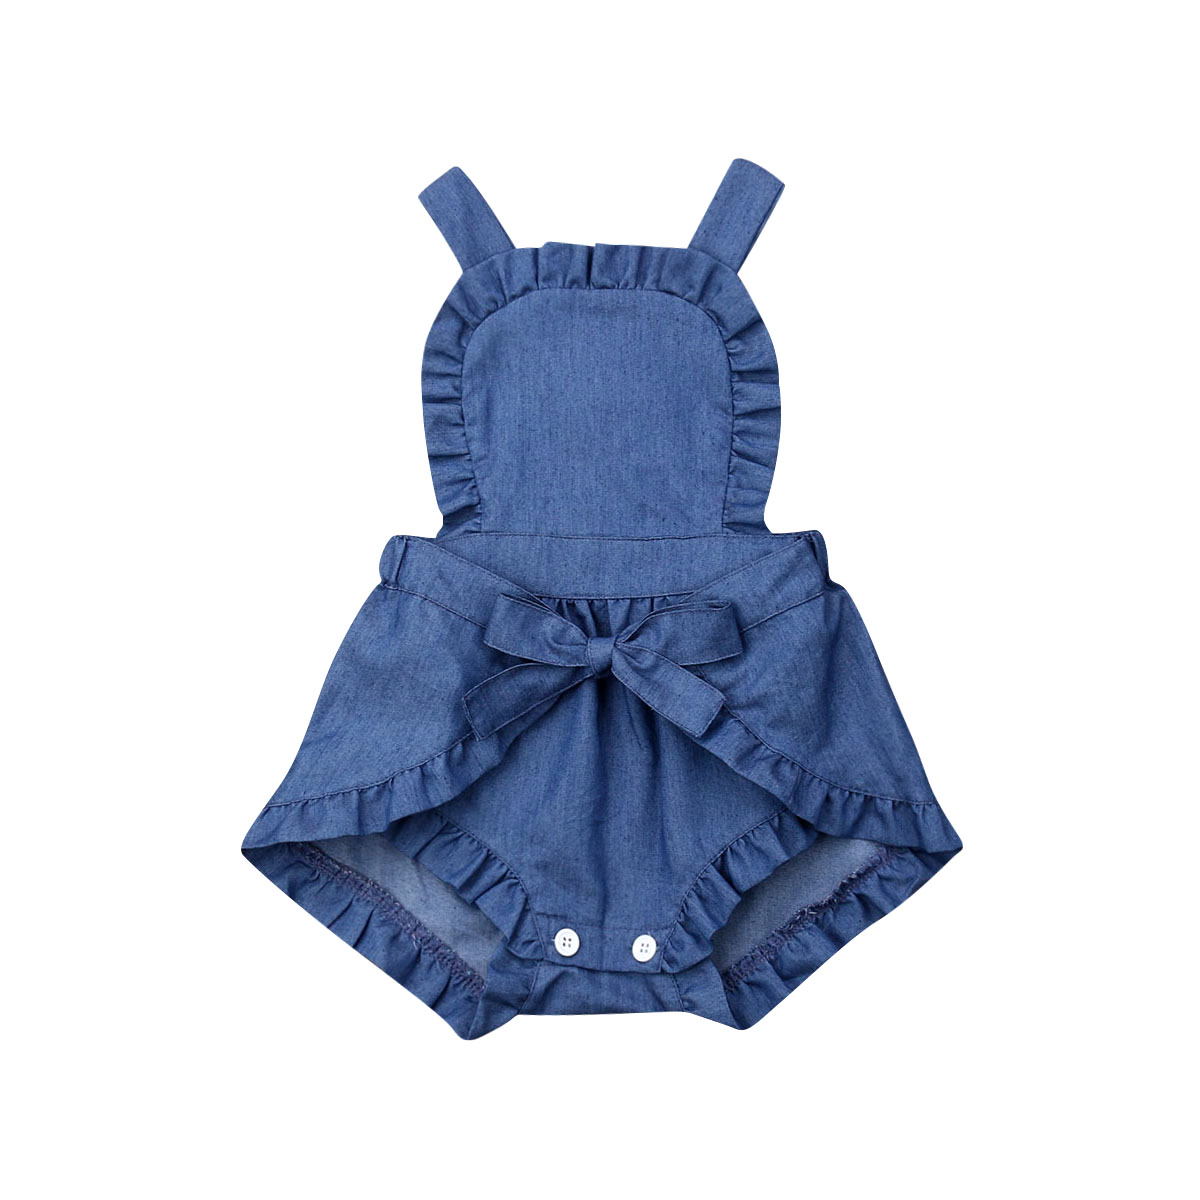 9b92a0528f2b8 New Baby Girl Ruffle Denim Bodysuit Jumpsuit Summer Clothes One Piece  Outfit Sunsuit